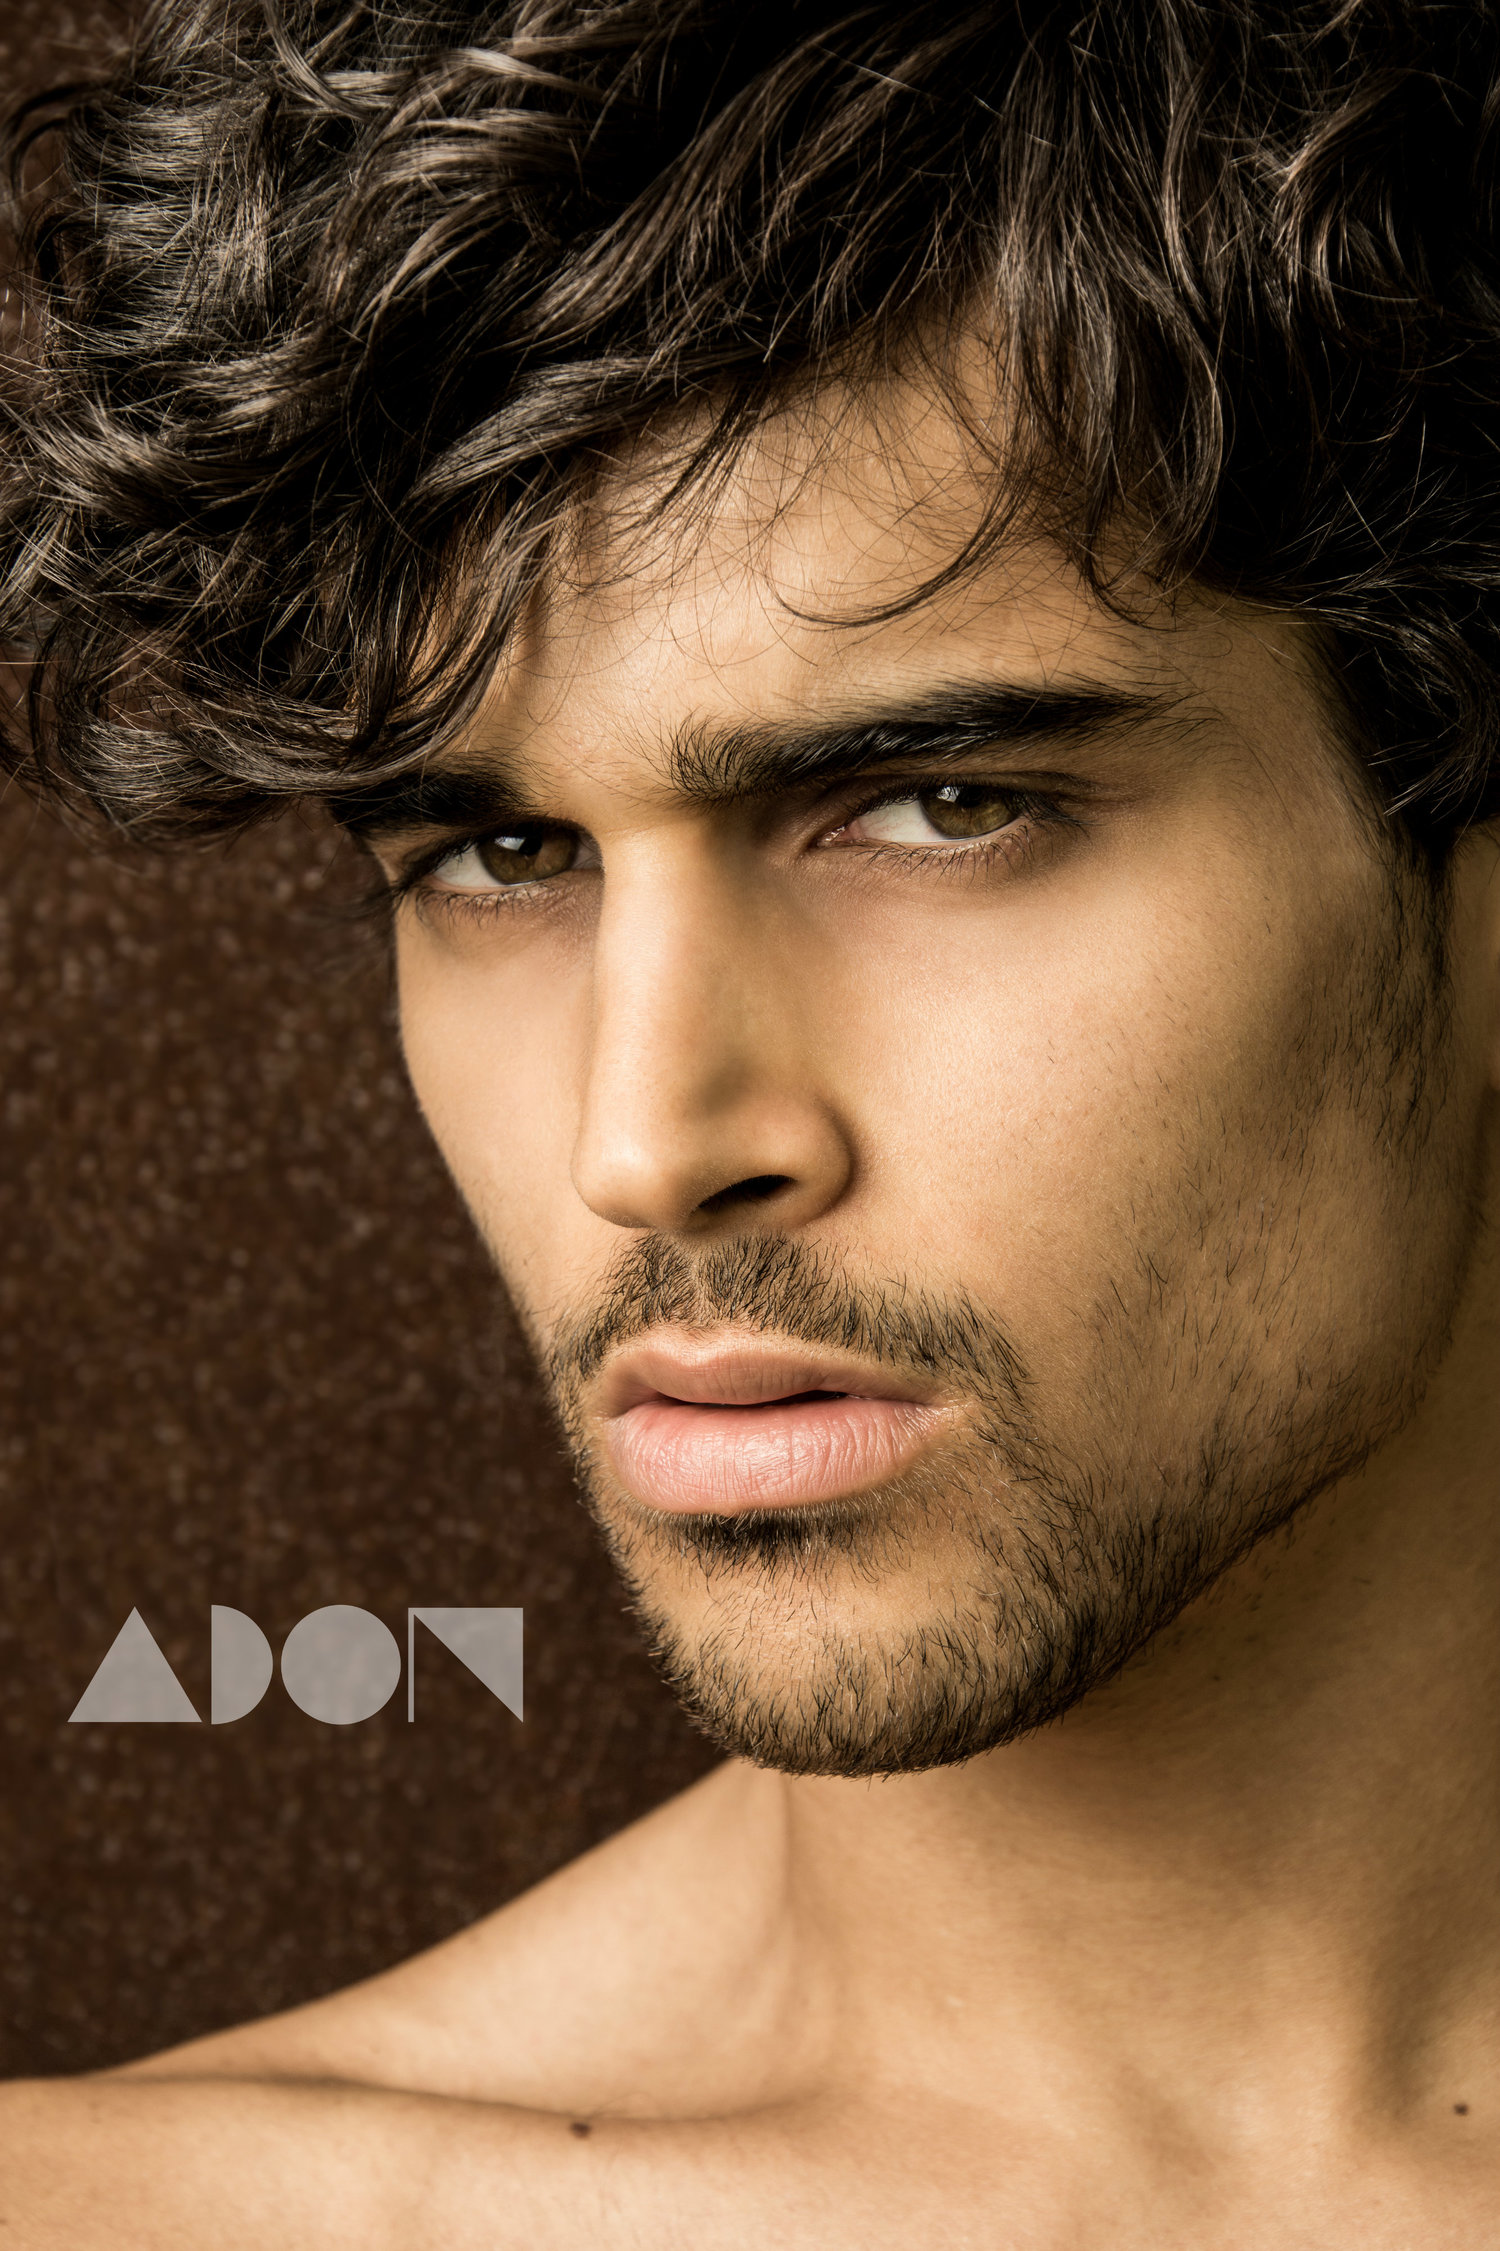 Adon Exclusive: Model RUY ANDRADE By EVERT D. NIEVES